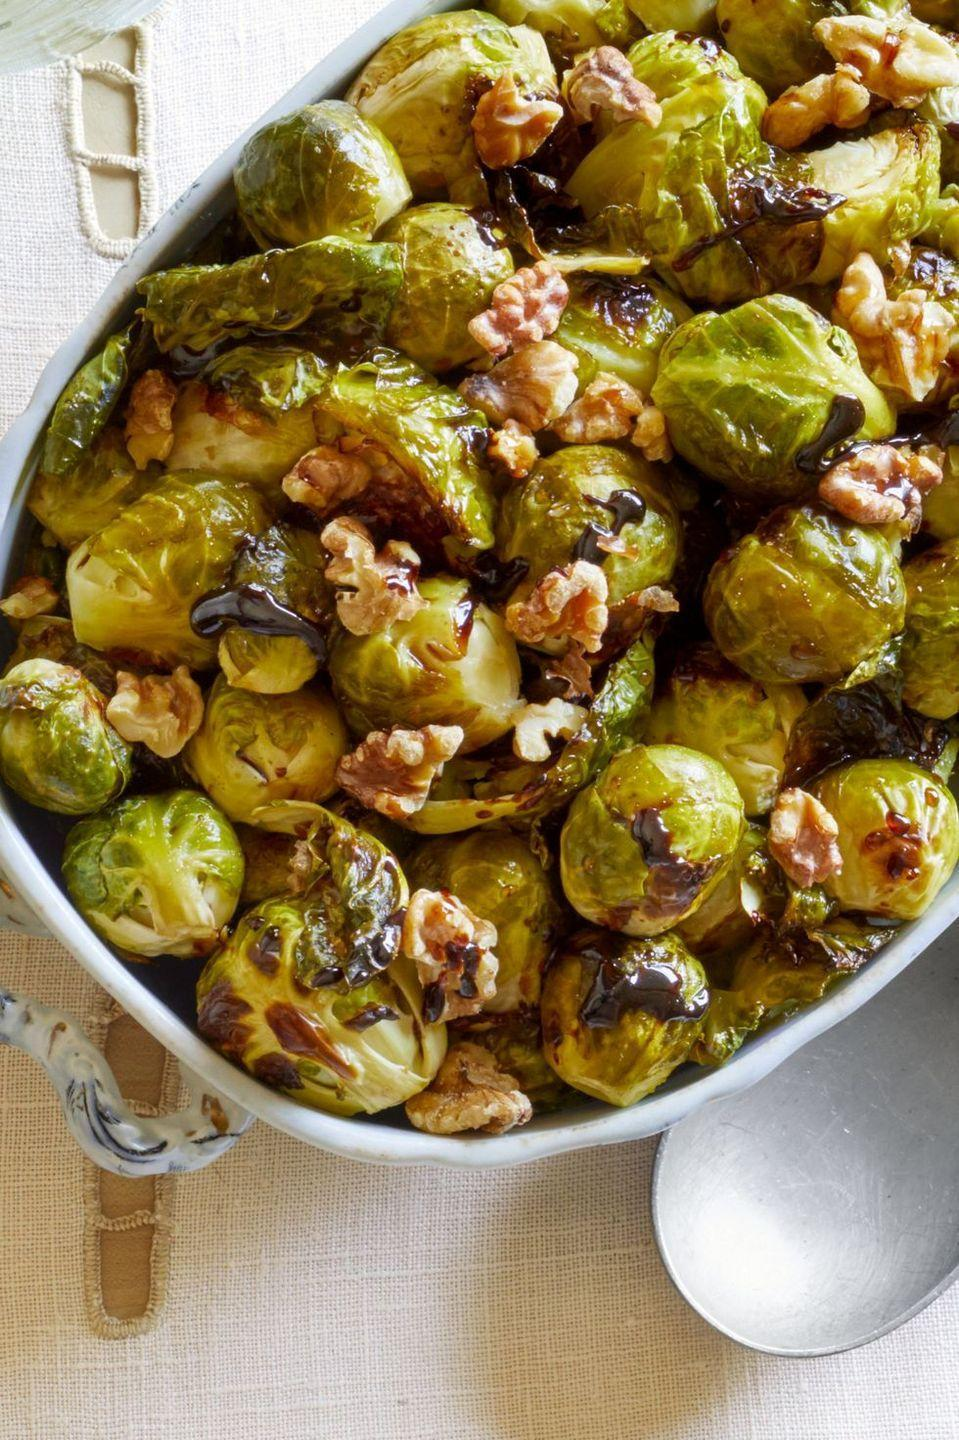 """<p>Wondering how to turn an ordinary veggie dish into a holiday-ready side? Dress it up! Here, Brussels sprouts are joined by a tangy balsamic reduction and crunchy walnuts. </p><p><strong><a href=""""https://www.thepioneerwoman.com/food-cooking/recipes/a33249425/brussels-sprouts-with-balsamic-reduction-walnuts-recipe/"""" rel=""""nofollow noopener"""" target=""""_blank"""" data-ylk=""""slk:Get the recipe"""" class=""""link rapid-noclick-resp"""">Get the recipe</a>.</strong></p><p><a class=""""link rapid-noclick-resp"""" href=""""https://go.redirectingat.com?id=74968X1596630&url=https%3A%2F%2Fwww.walmart.com%2Fsearch%2F%3Fquery%3Dcookware&sref=https%3A%2F%2Fwww.thepioneerwoman.com%2Ffood-cooking%2Fmeals-menus%2Fg35589850%2Fmothers-day-dinner-ideas%2F"""" rel=""""nofollow noopener"""" target=""""_blank"""" data-ylk=""""slk:SHOP COOKWARE"""">SHOP COOKWARE</a></p>"""